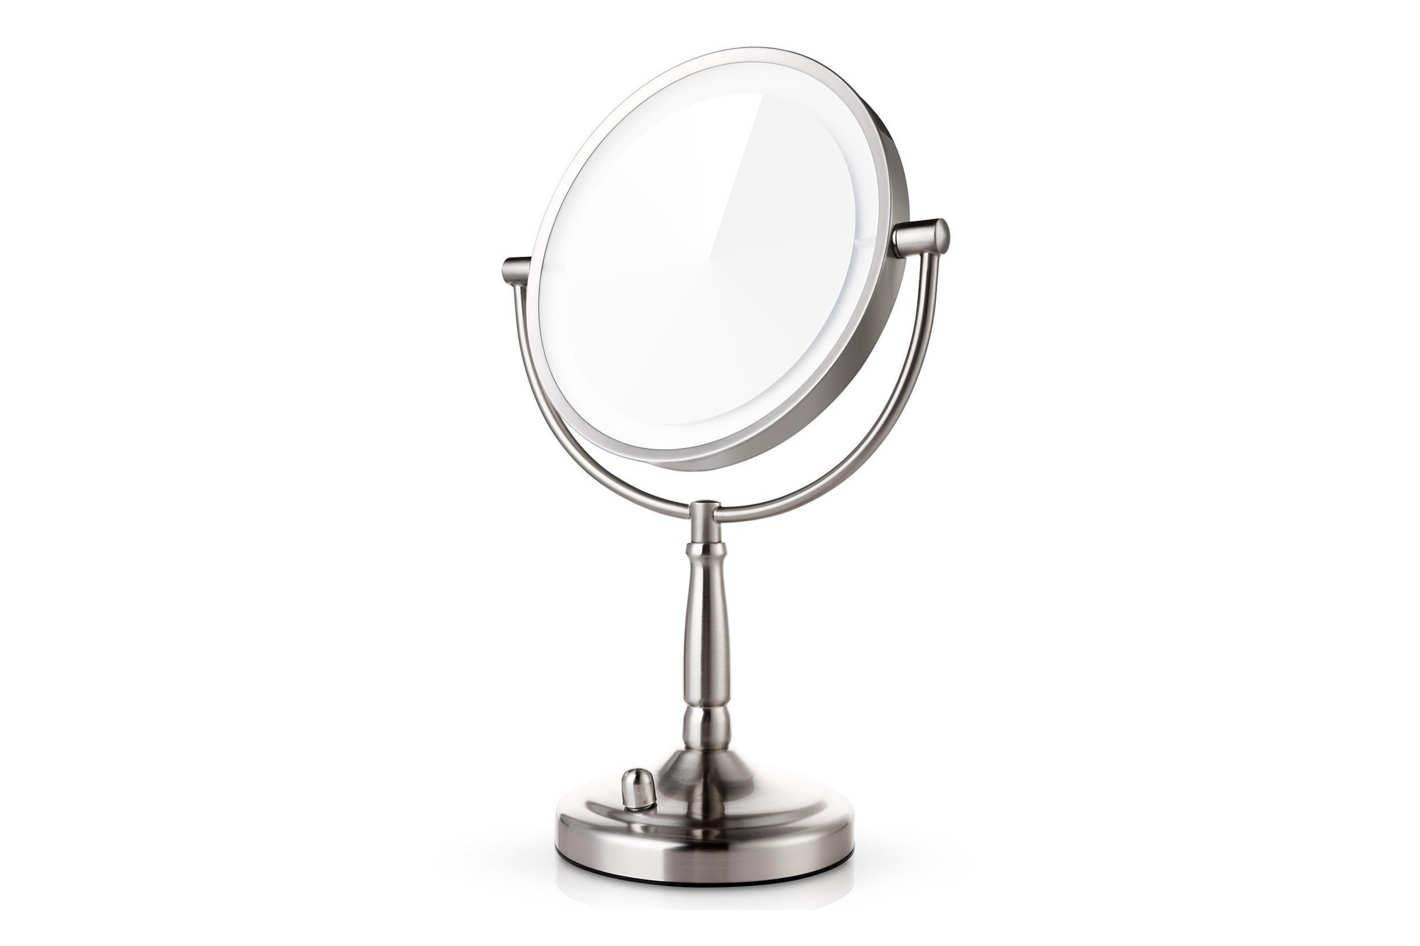 11 Best Vanity Makeup Mirrors Lights 2017: Lighted Mirrors Within Lit Makeup Mirrors (Image 5 of 20)